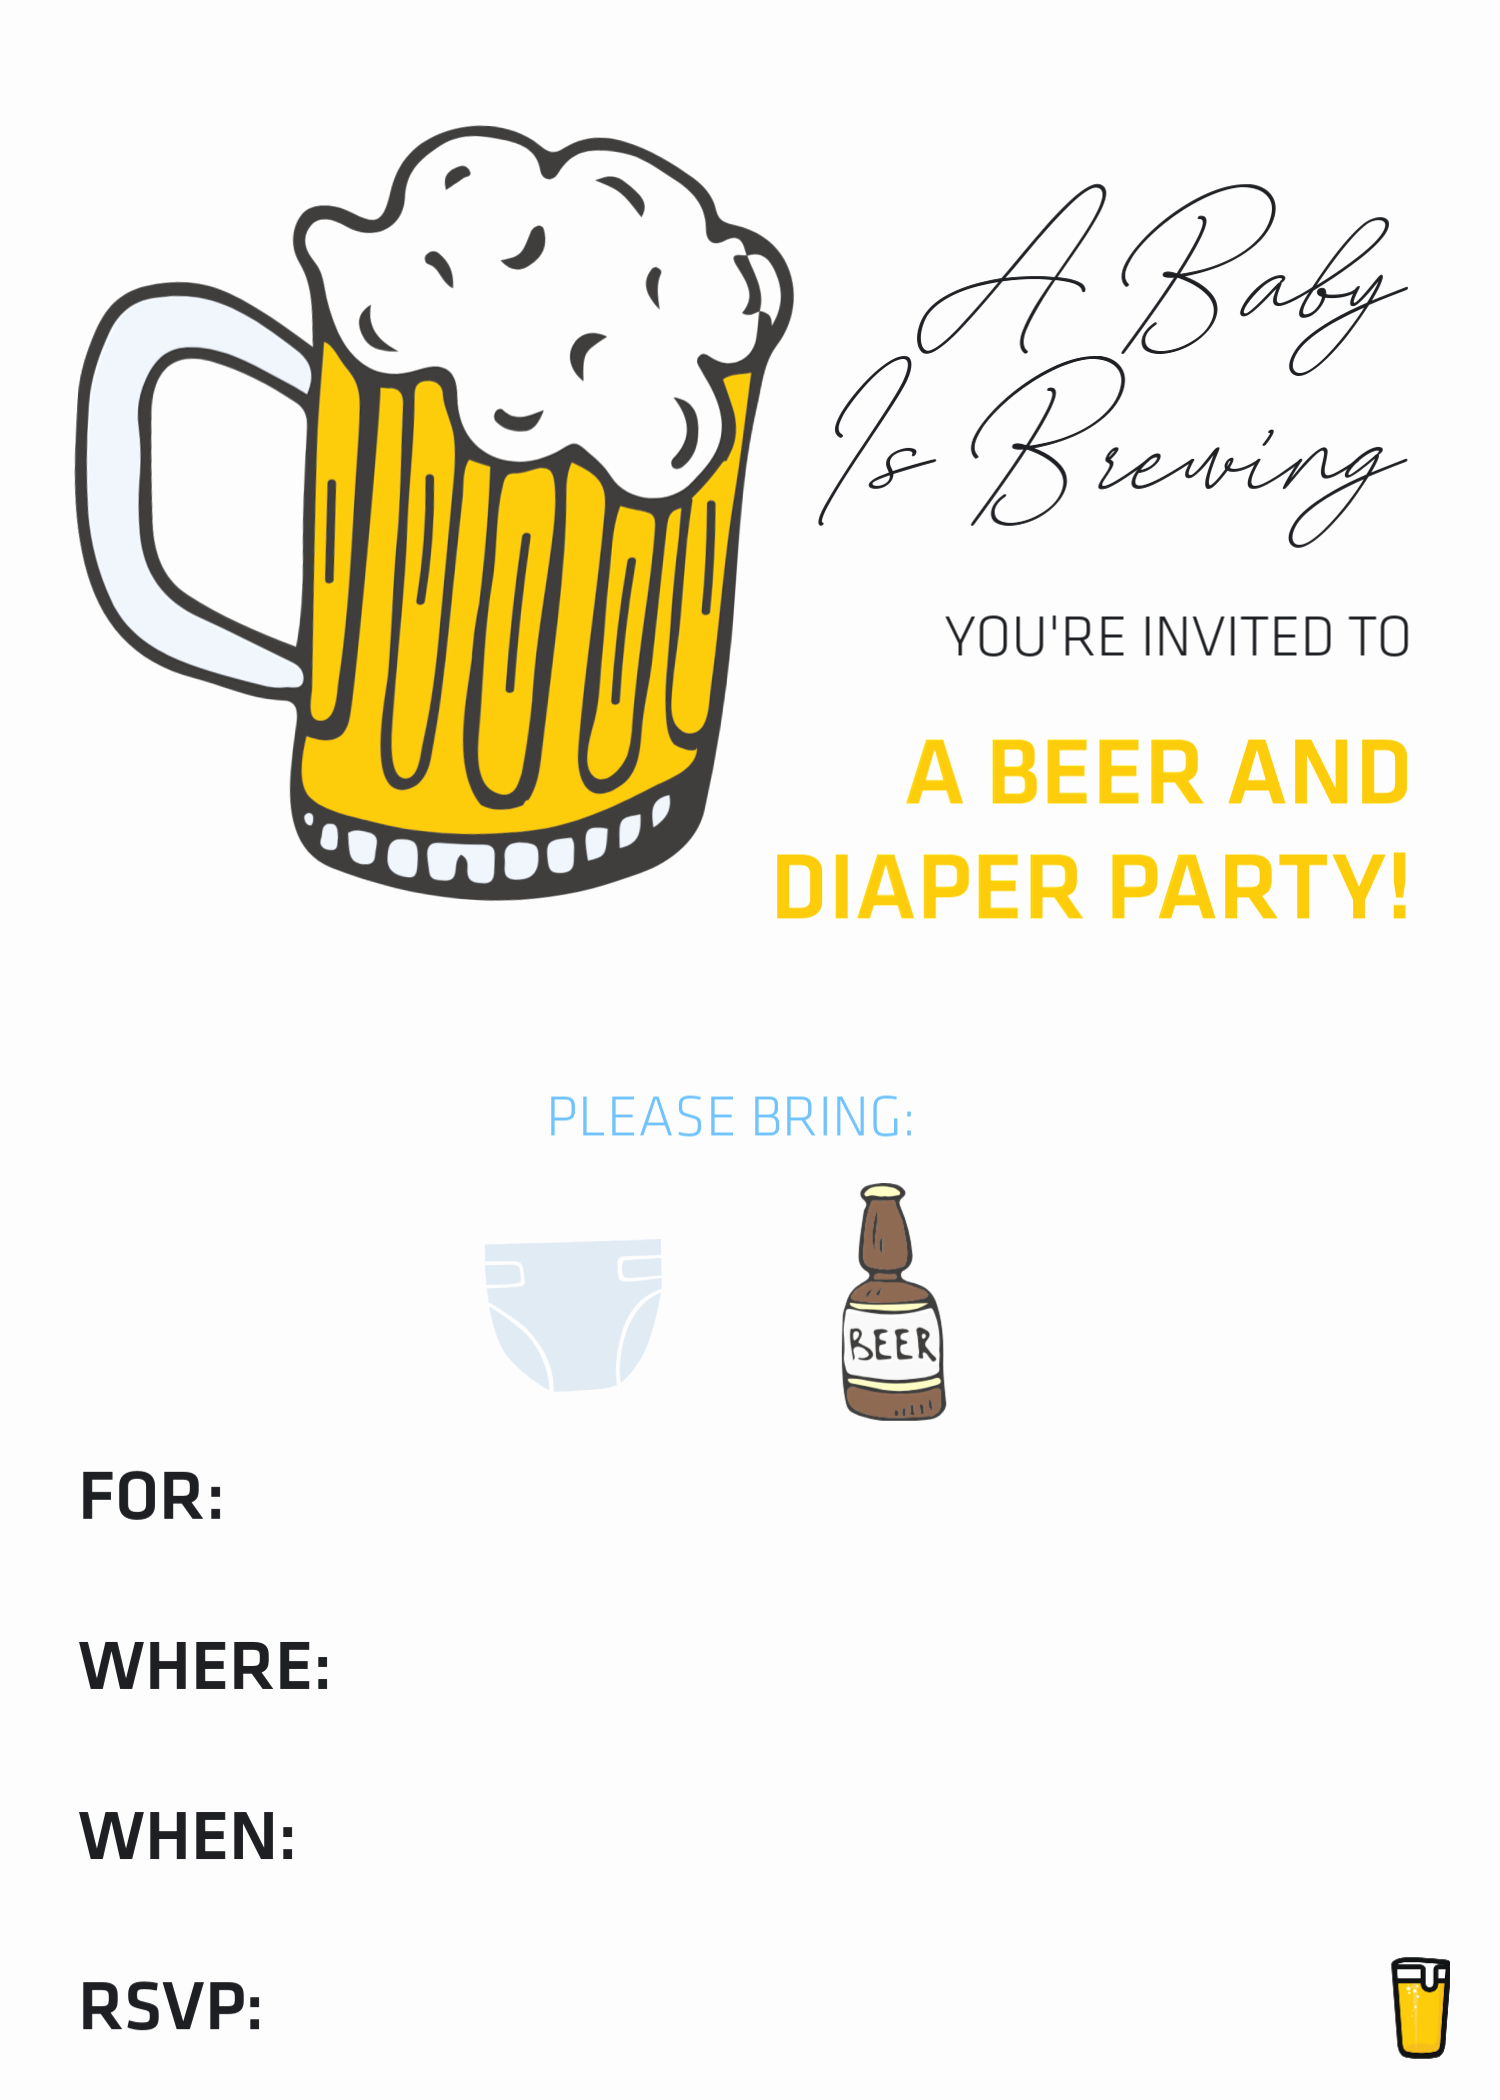 Diaper Party Invitation Template Awesome How to Throw A Beer & Diaper Party – the Best Dad Baby